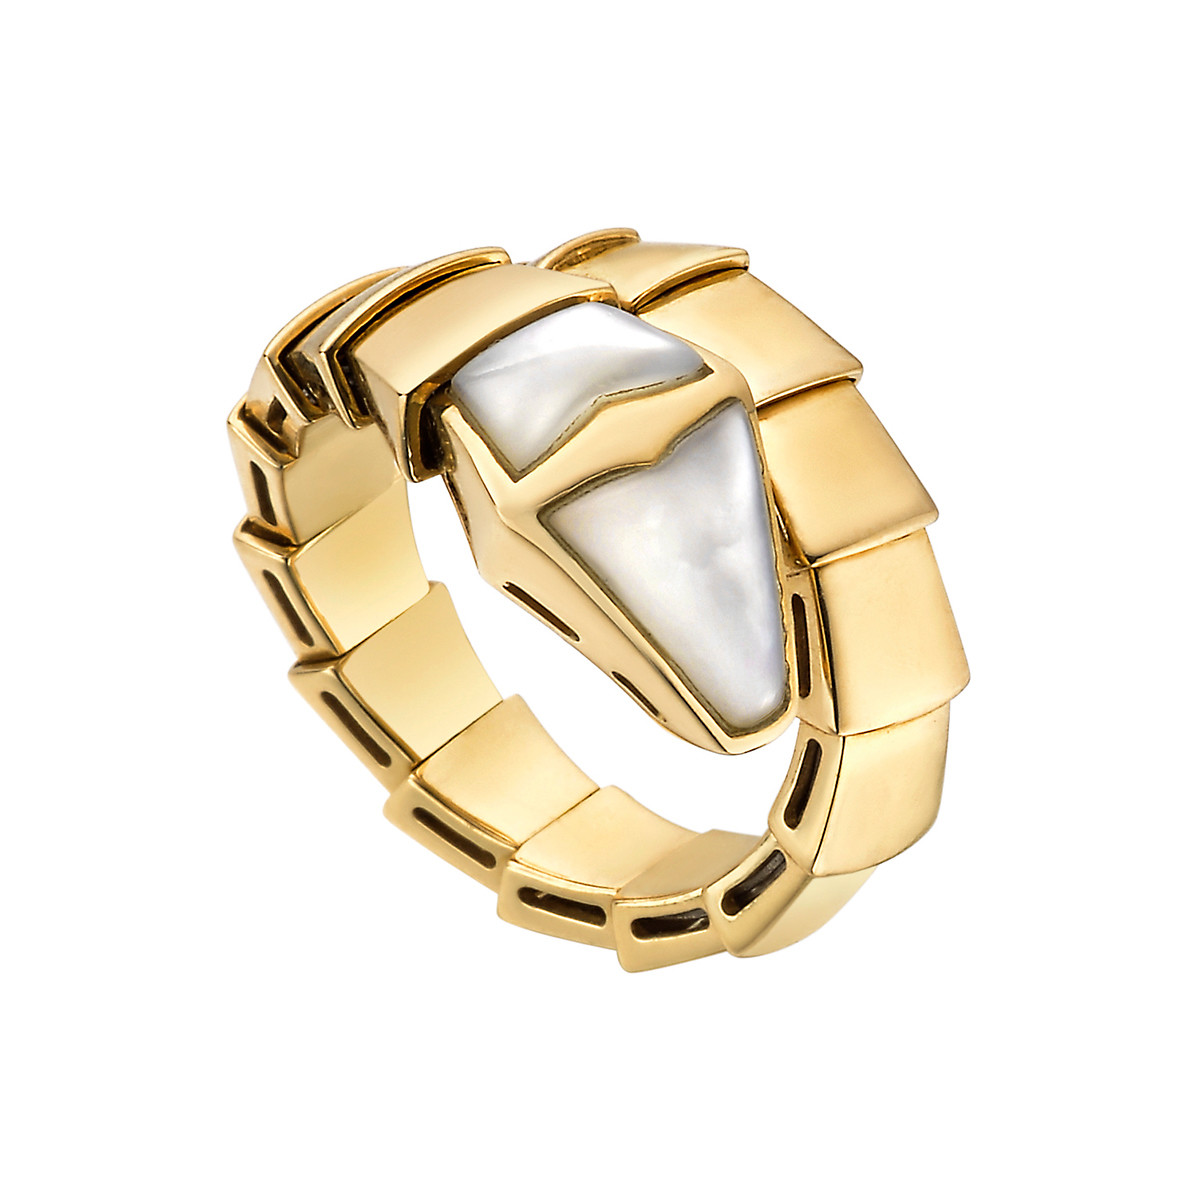 "18k Yellow Gold & Mother-of-Pearl ""Serpenti"" Ring"